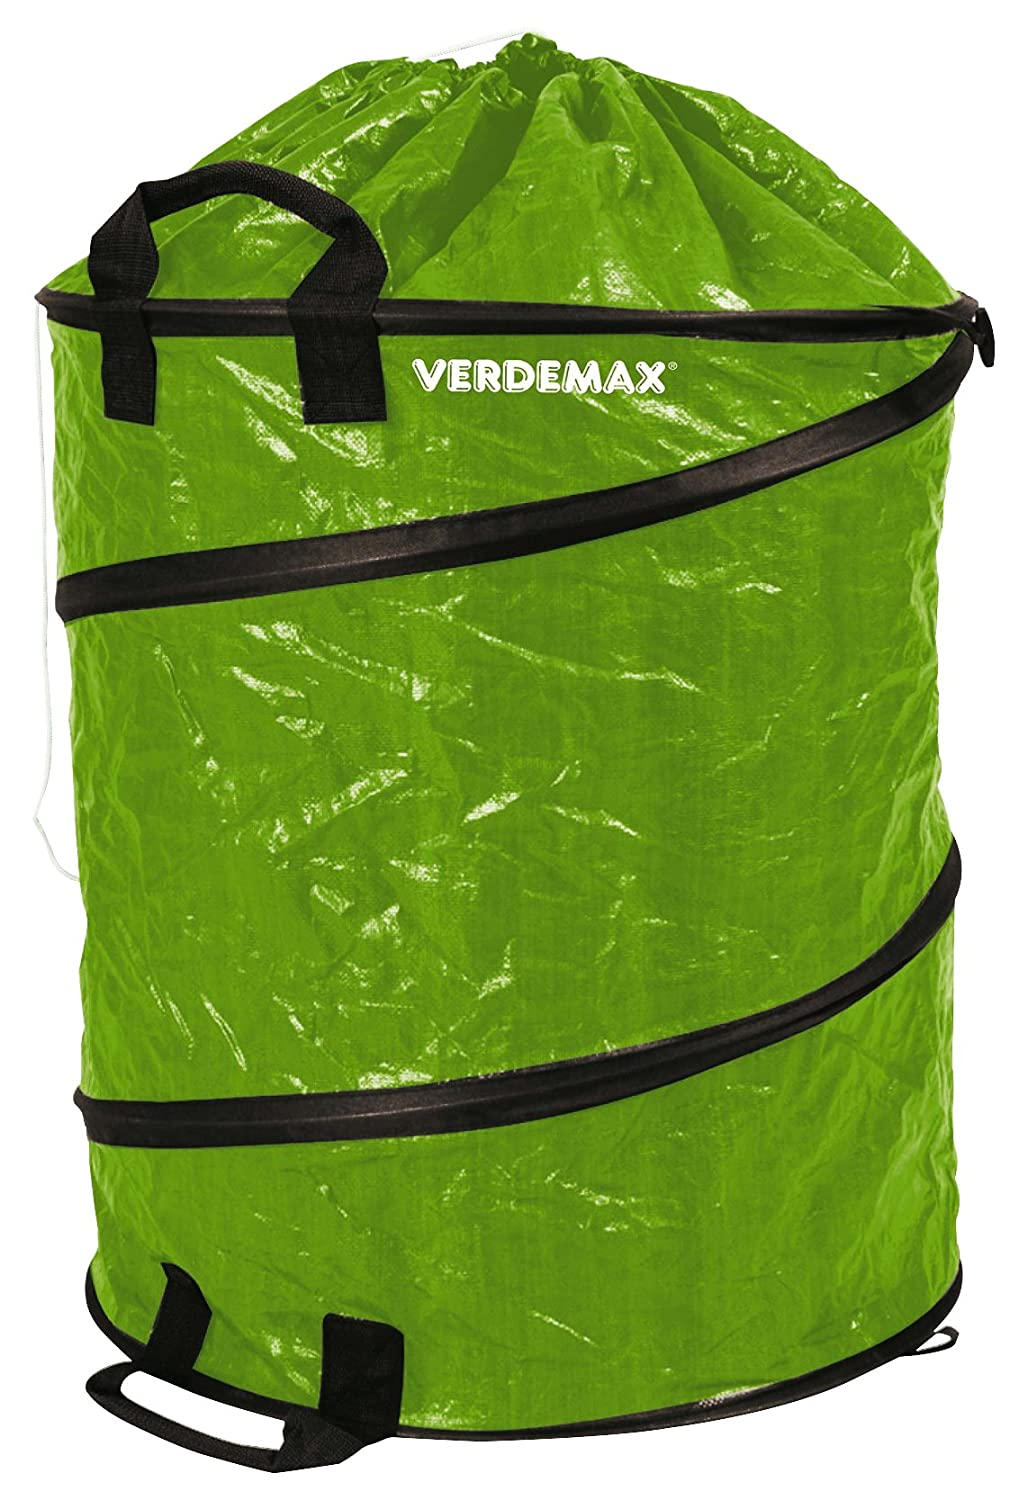 Verdemax 2998 56 x 65 cm Multi-Purpose Big Pop-Up Bag